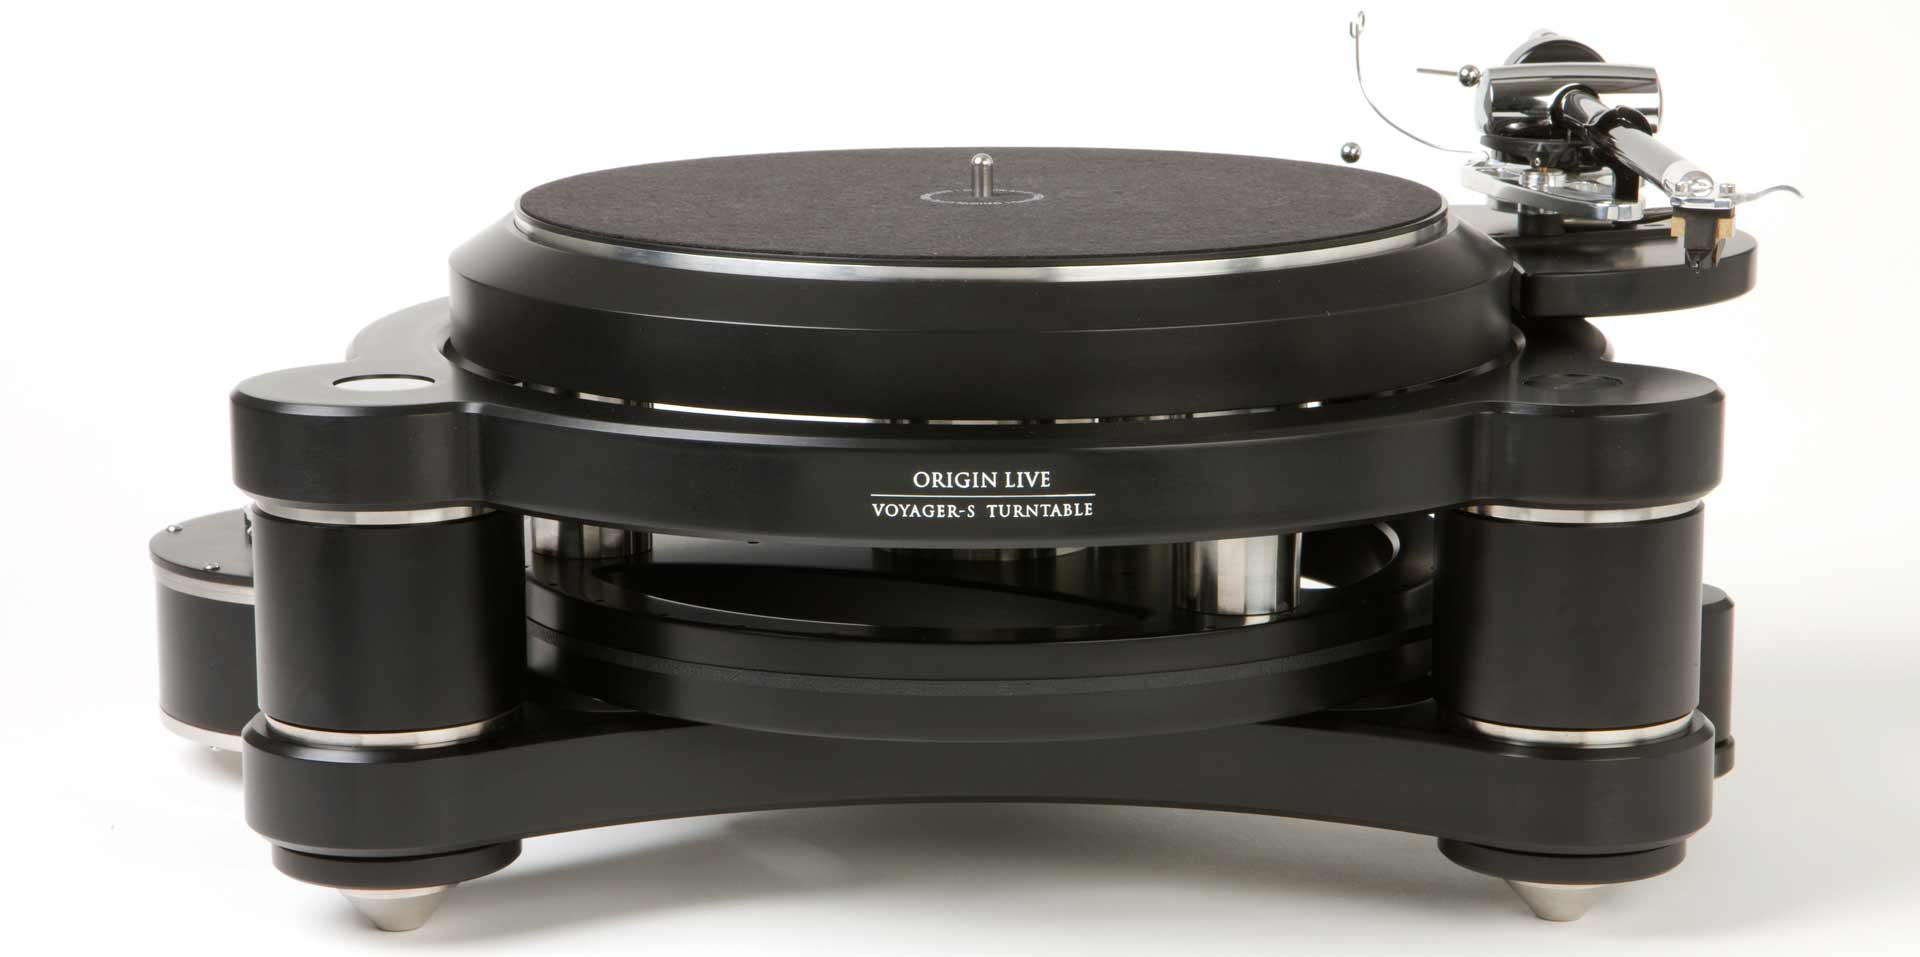 Voyager Turntable High End Design By Origin Live